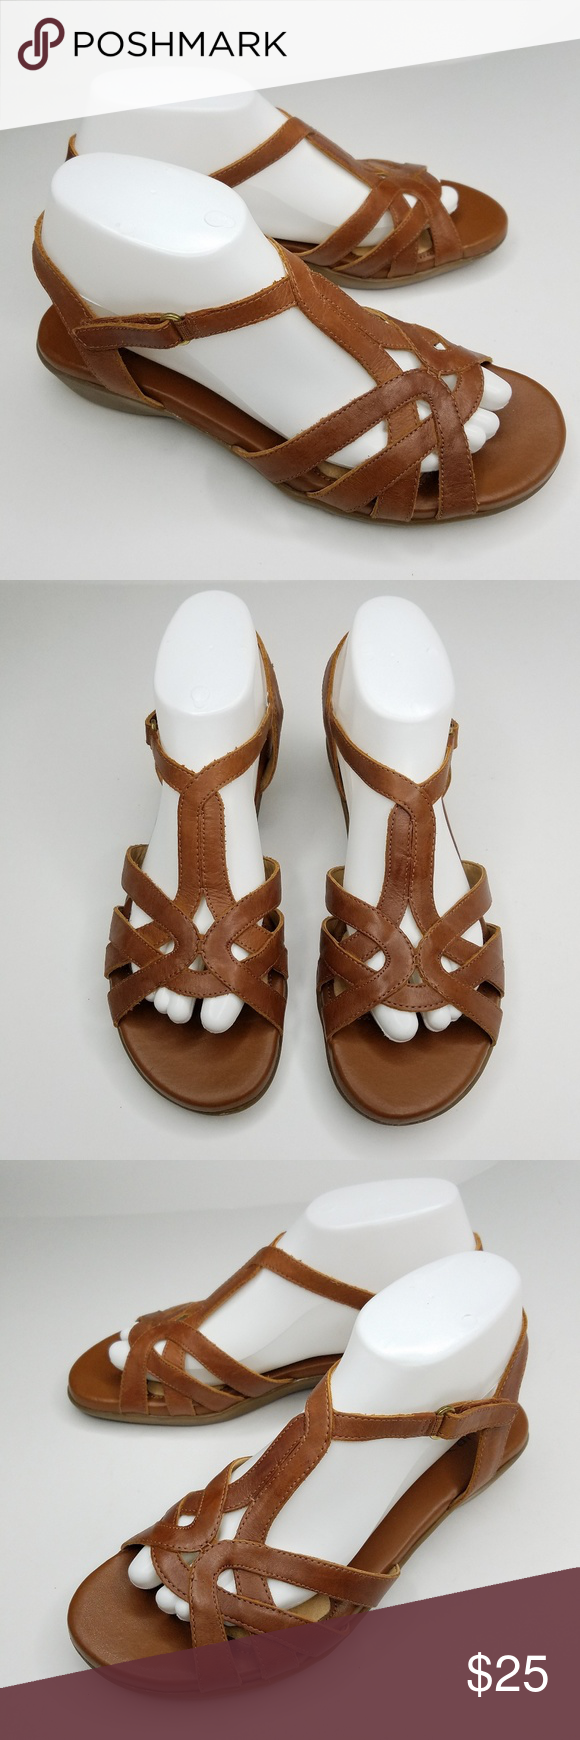 288f35ebfc1d Naturalizer nella brown strappy sandals size Condition  Preowned. Very  gently worn. Size